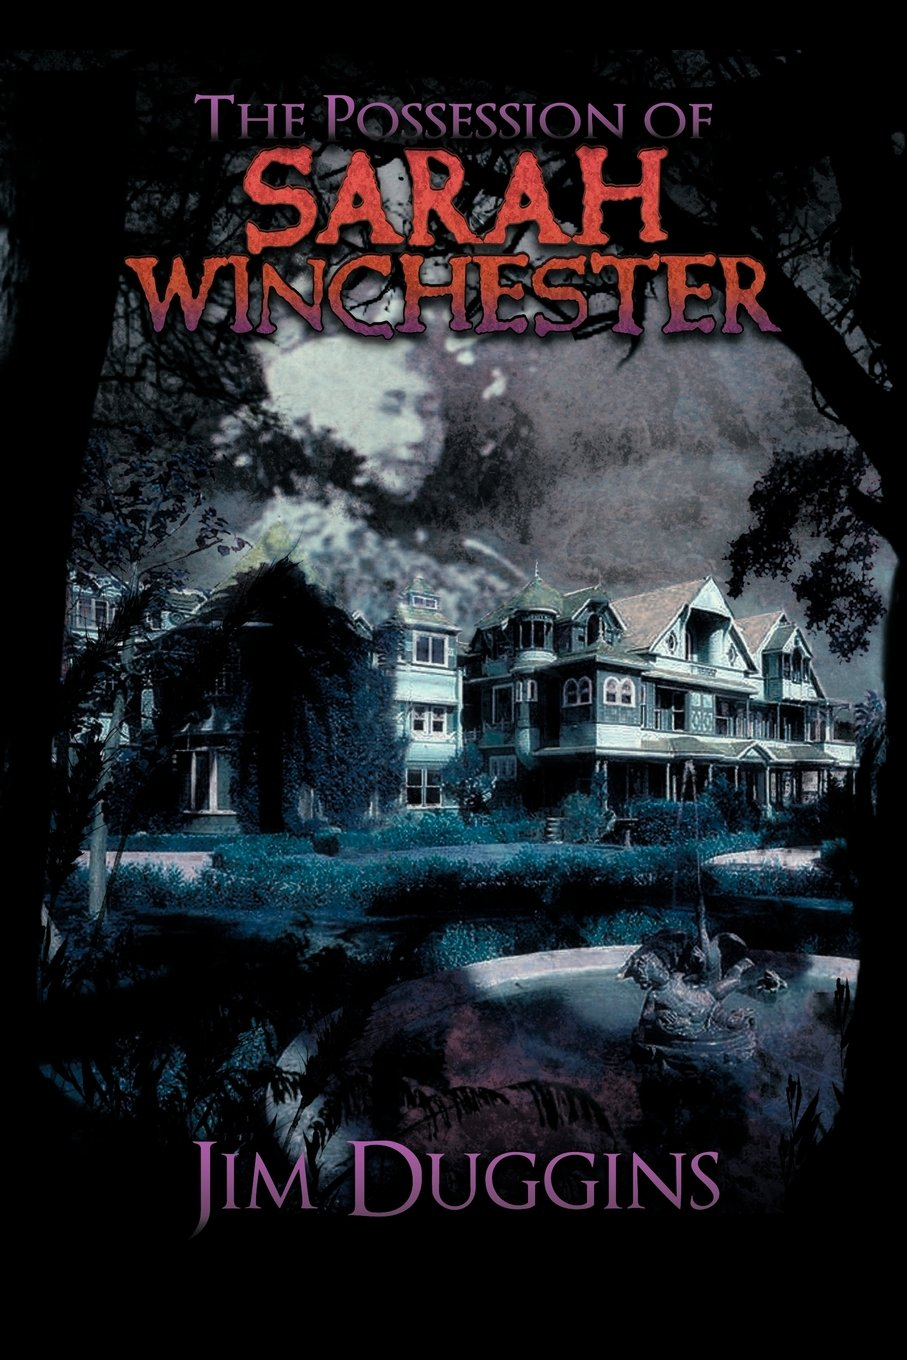 Download The Possession of Sarah Winchester: Jim Duggins pdf